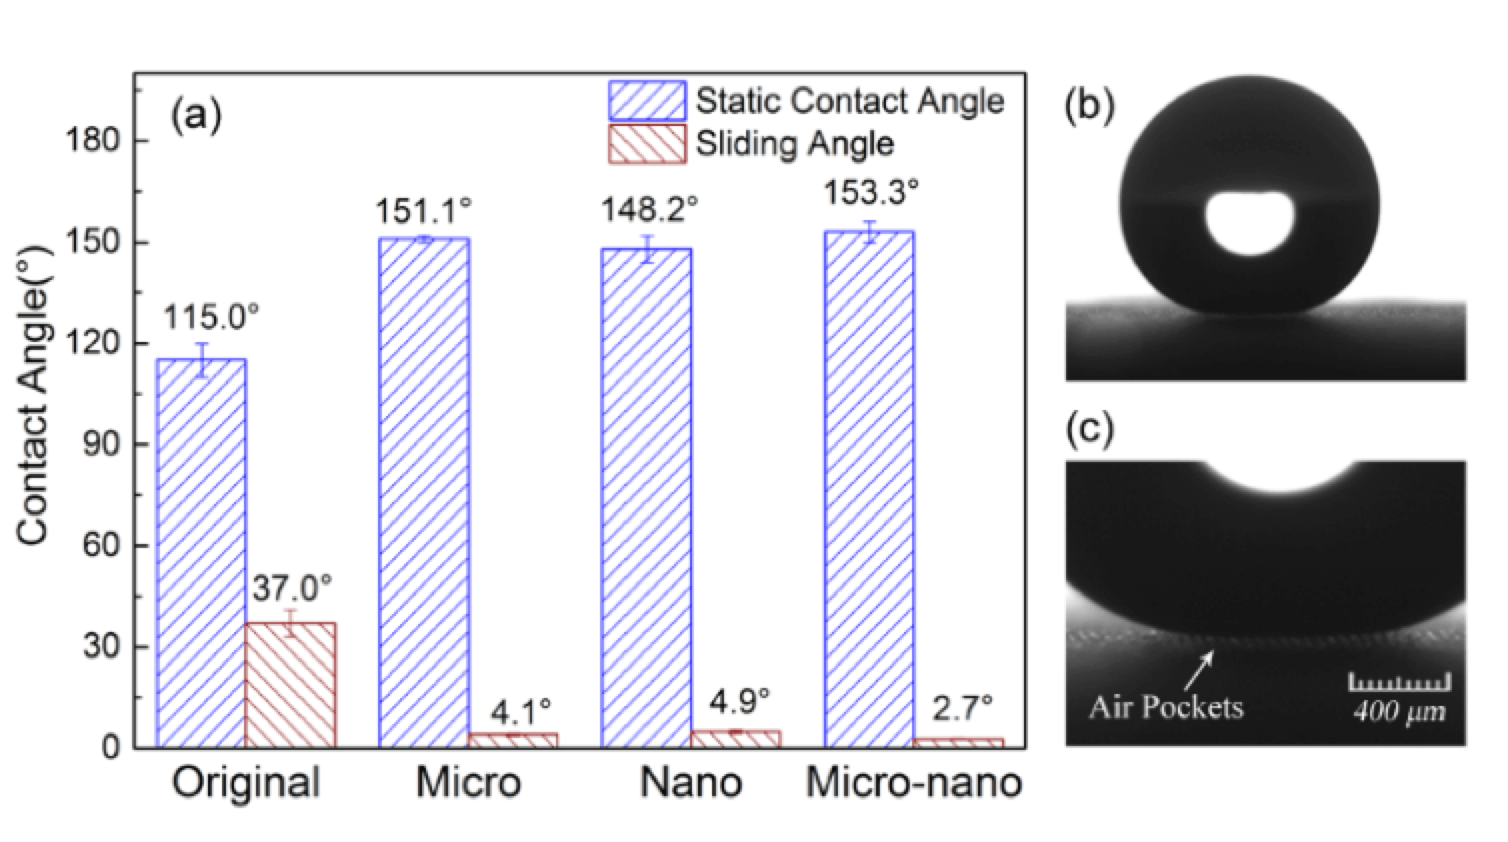 Fig. 12: Contact angle and sliding angle of the original and super-hydrophobic HTV specimens. (a) contact angle and sliding angle; (b) contact angle of HTV specimen with micro-nano structure; (c) air pockets between water and HTV specimen with micro-nano structure. [object object] Key Issues for Future of Composite Insulators Screen Shot 2018 09 28 at 15